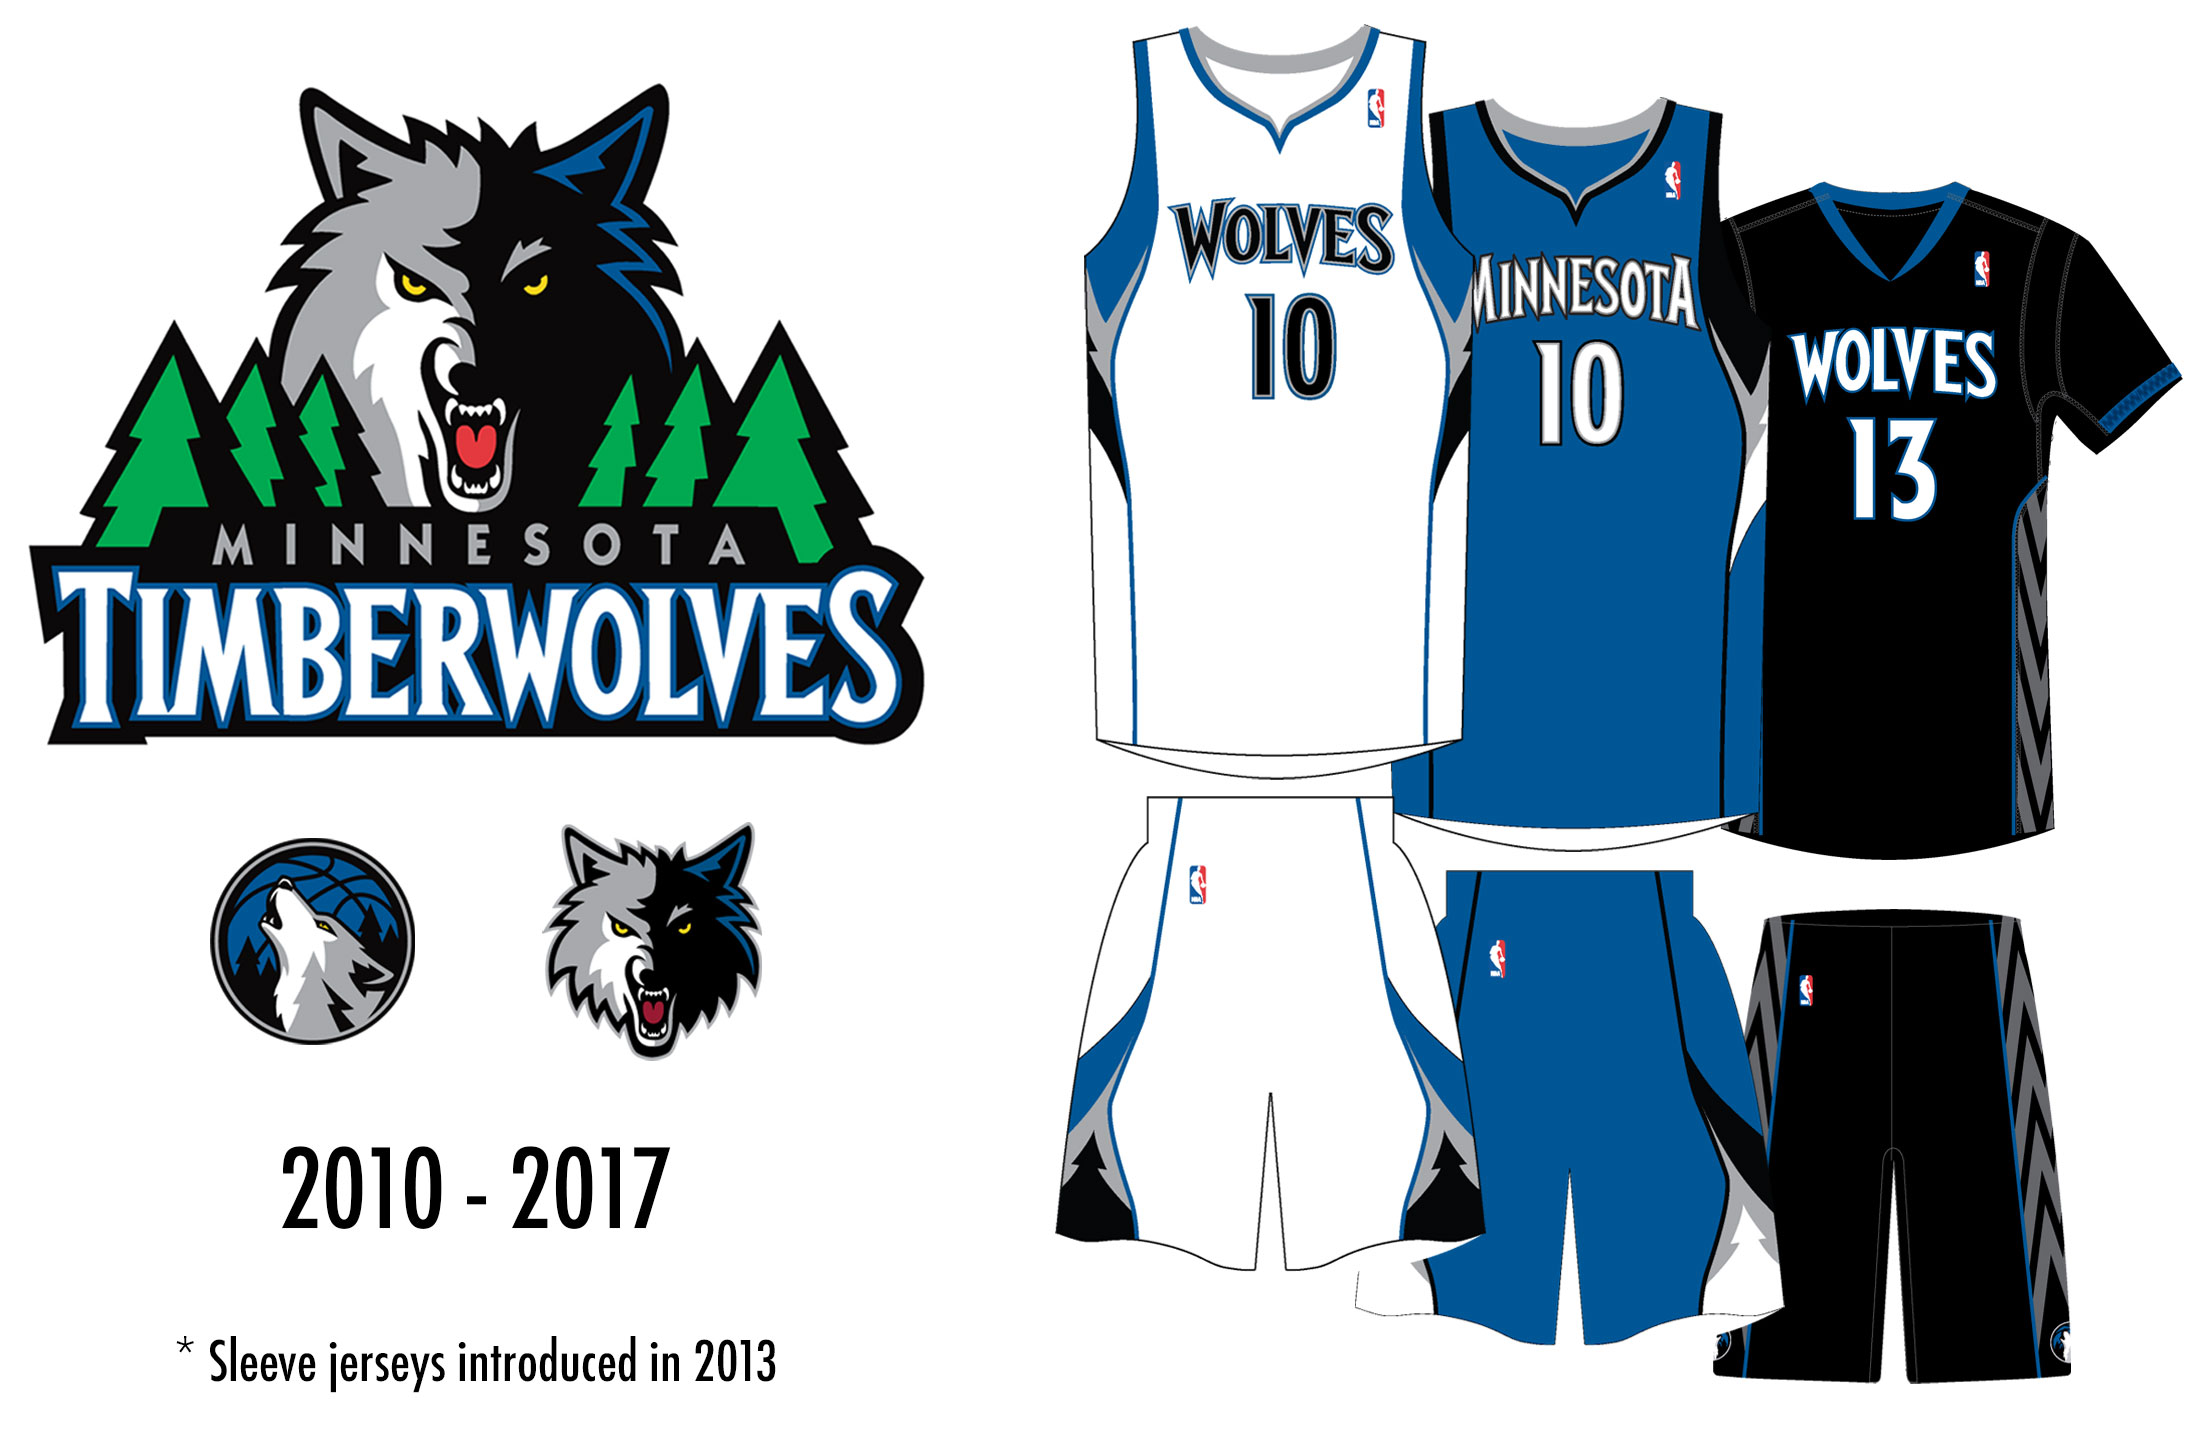 64496267b ... Timberwolves Uniform From 2010 to 2017  Timberwolves Uniform From 2017  to Present